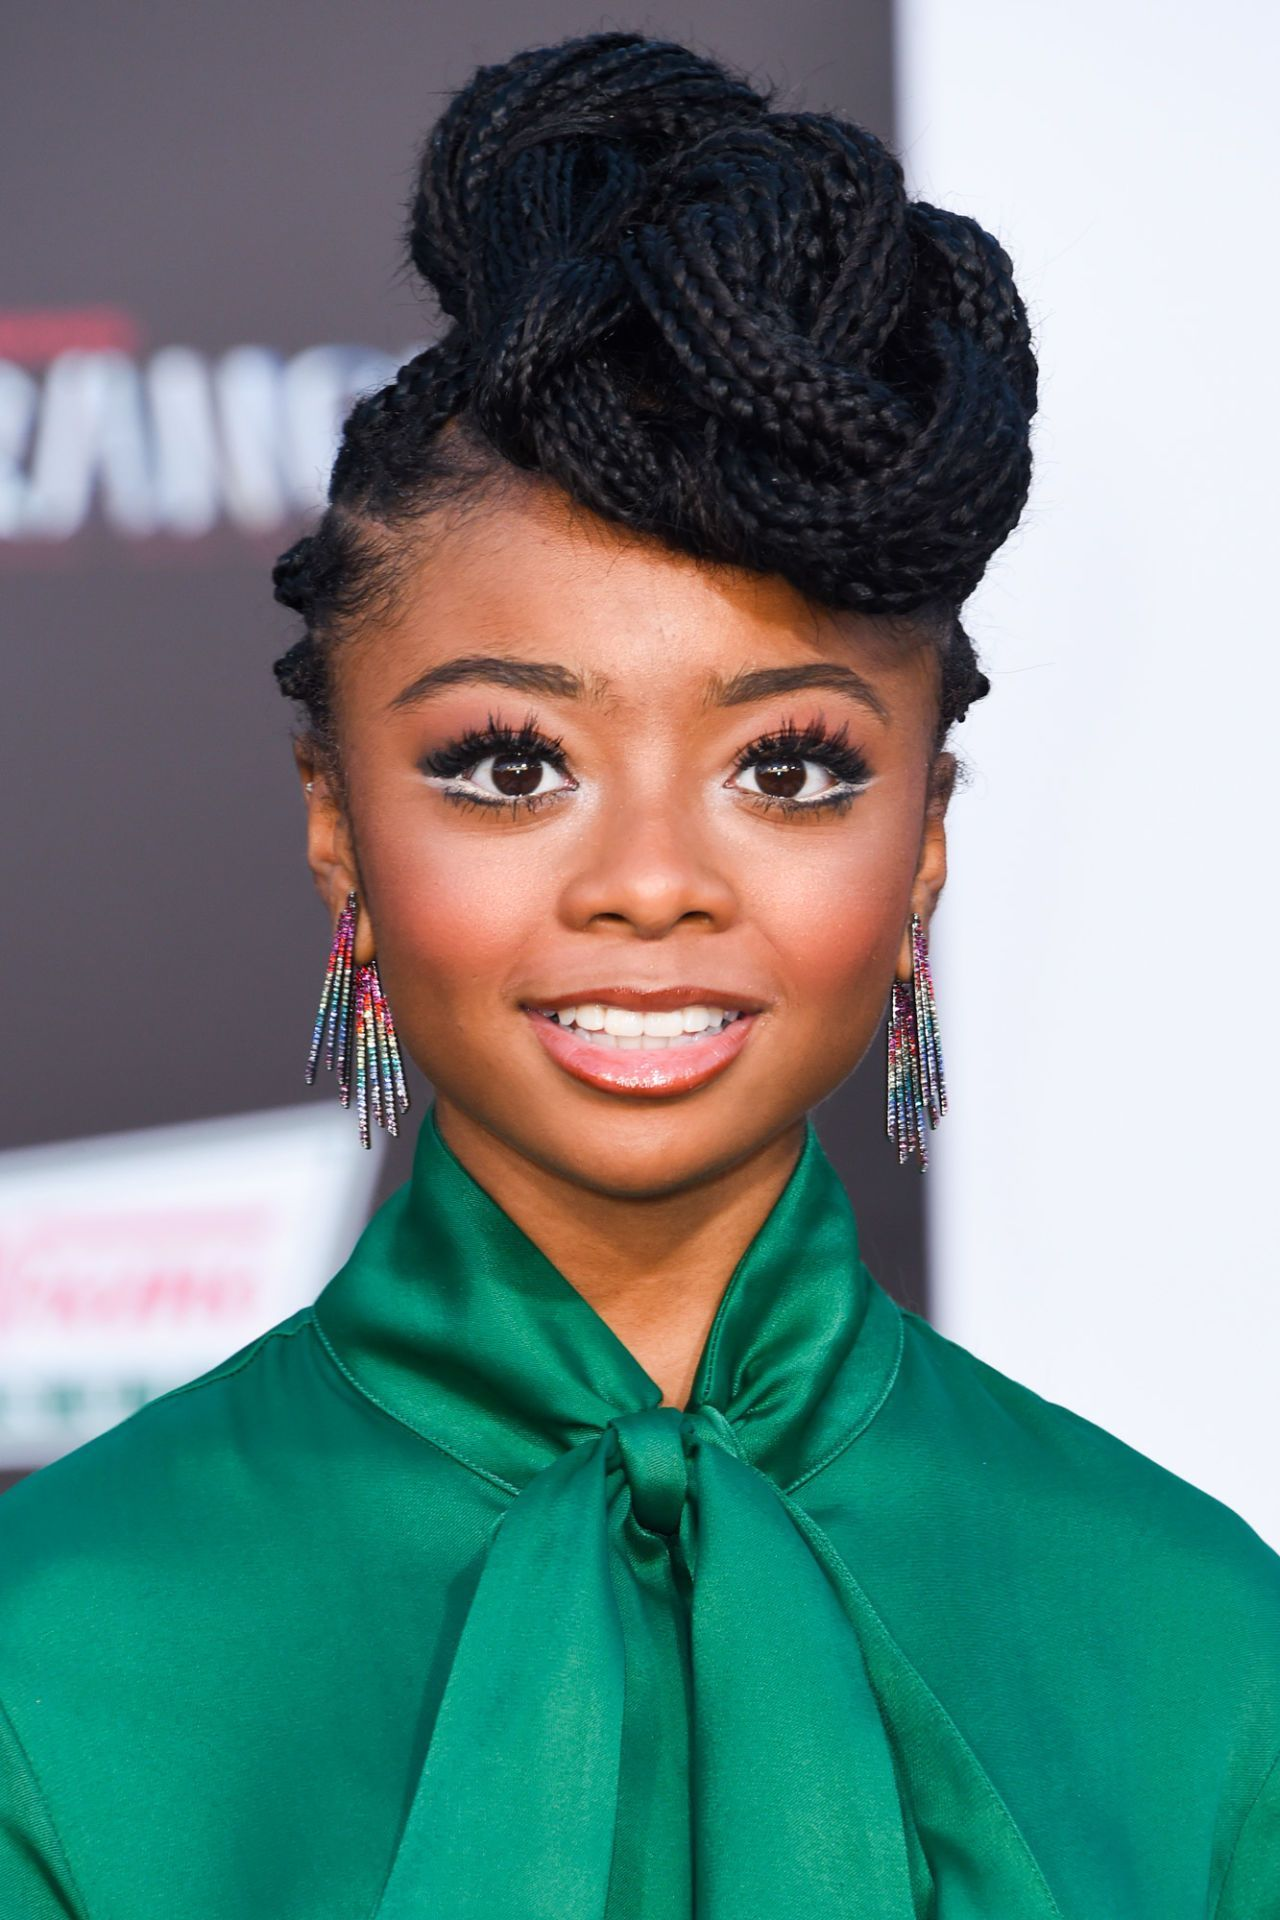 Skai Jackson Cool Braid Hairstyles Braided Hairstyles Cute Braided Hairstyles